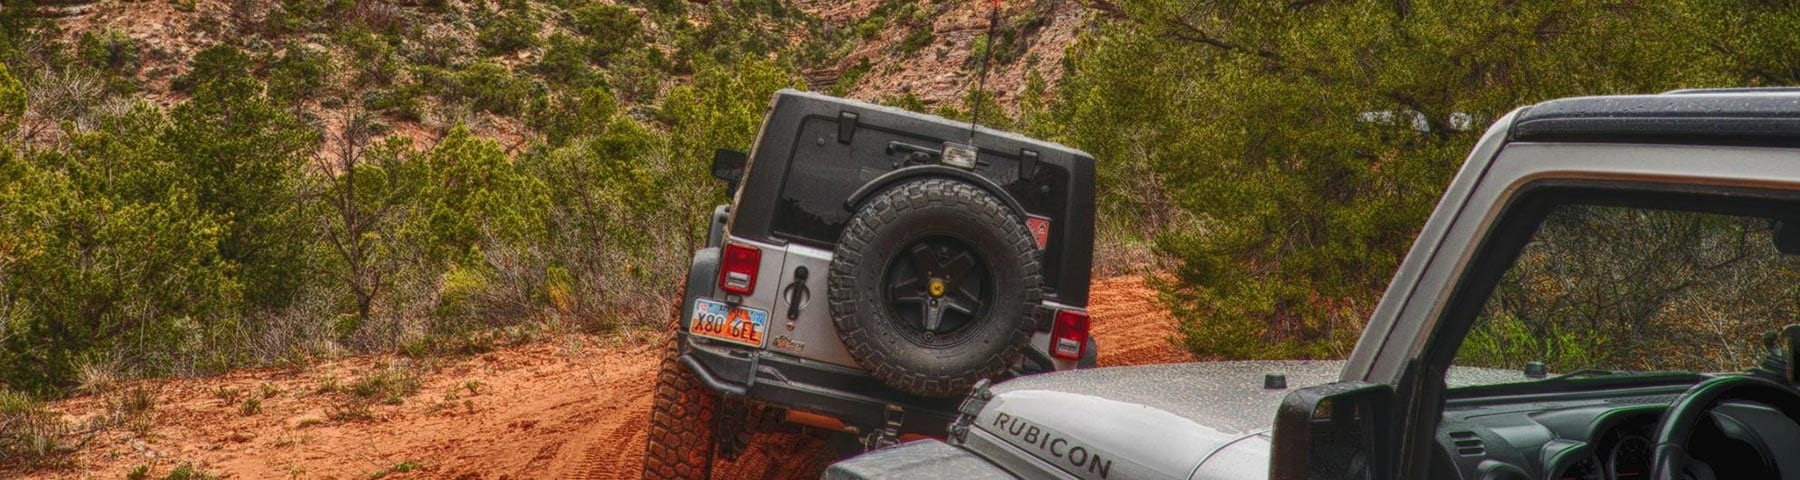 arch canyon jeep trip